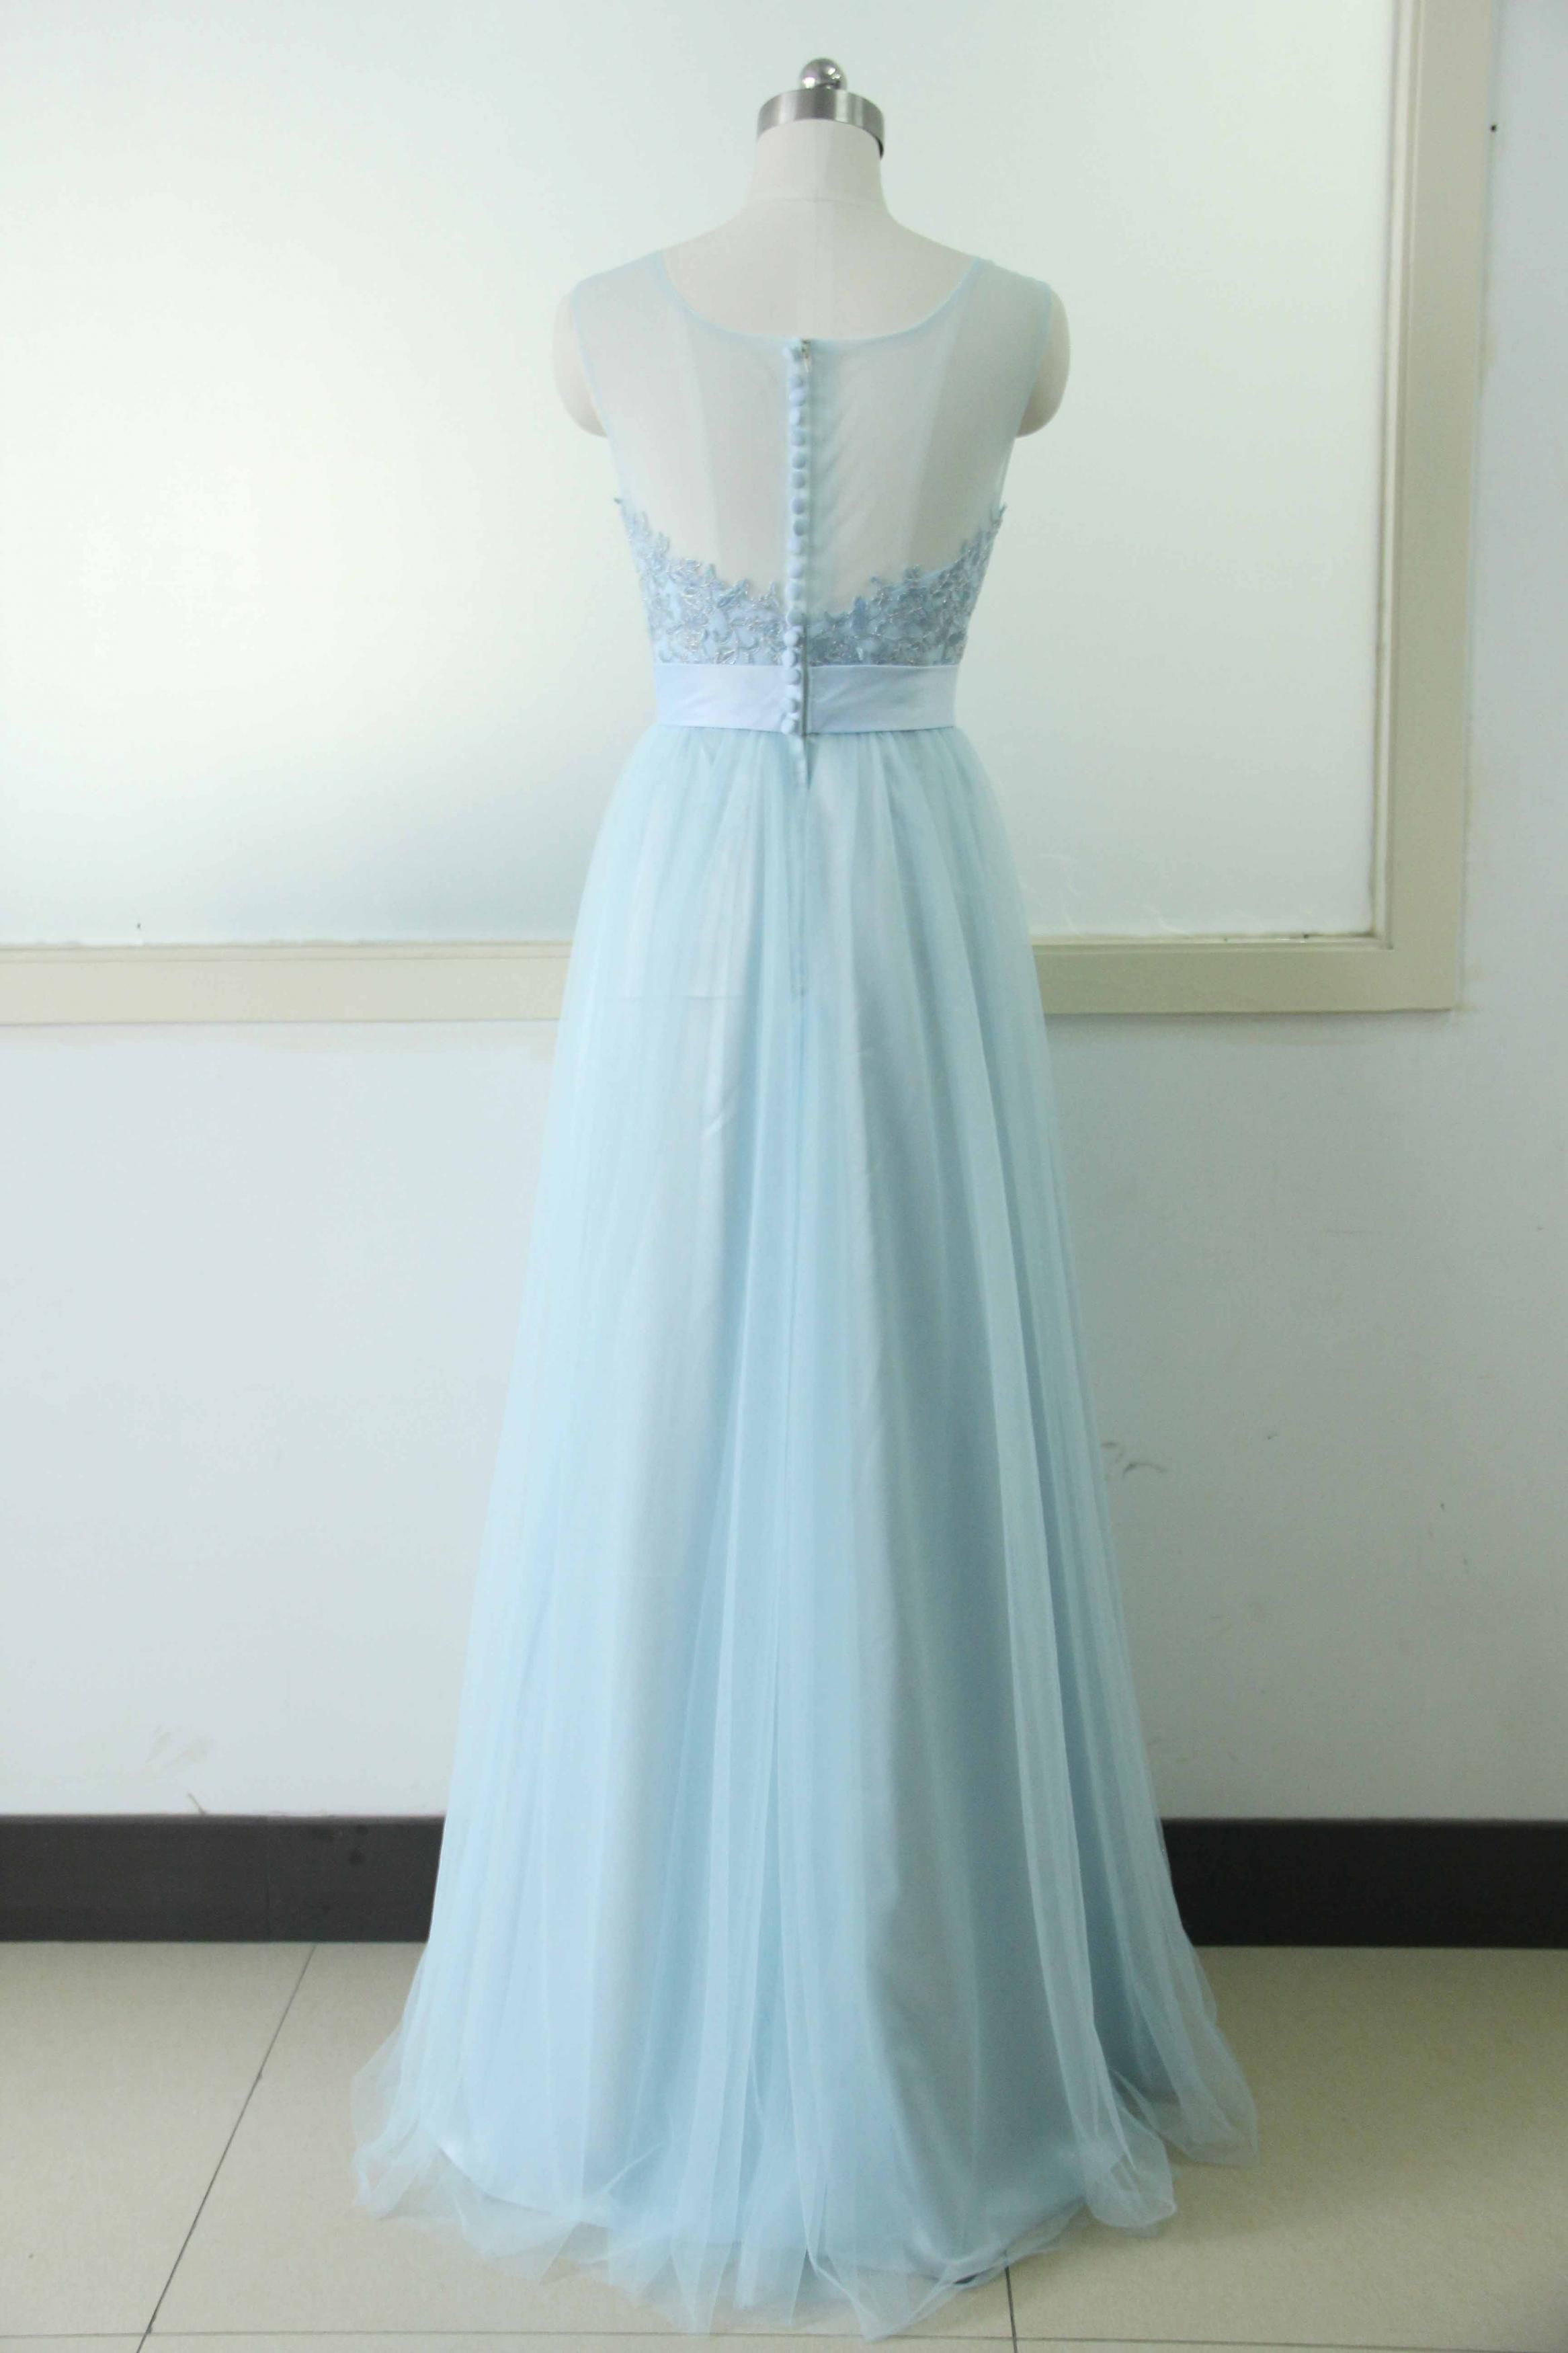 Sleeveless tulle party dress light blue lace bridesmaid prom dress